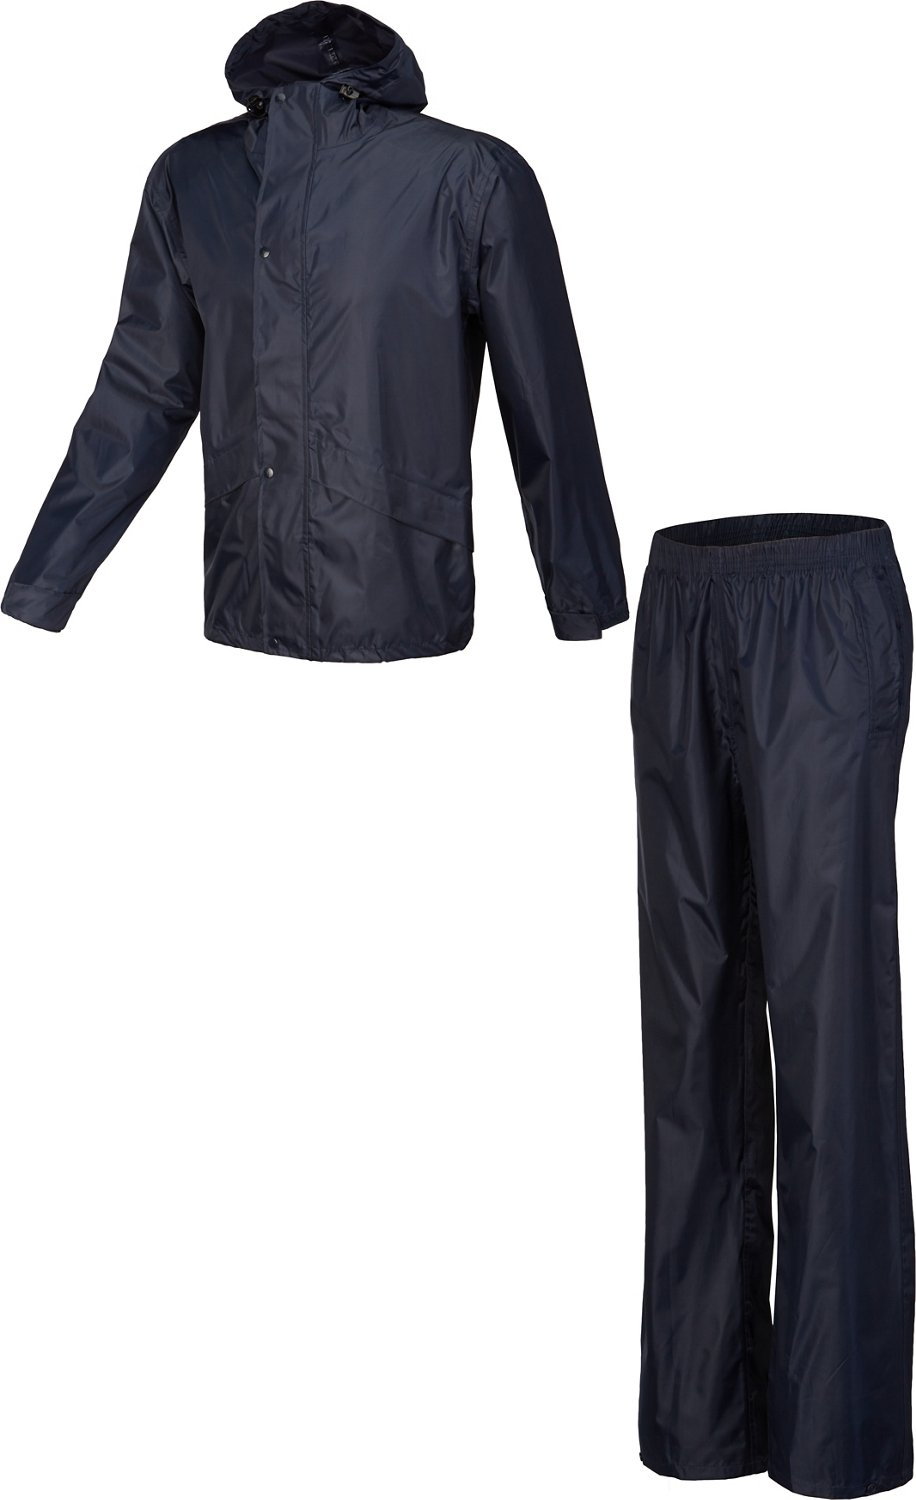 b6e2ffcea7490 Display product reviews for Academy Sports + Outdoors Men's Rain Suit